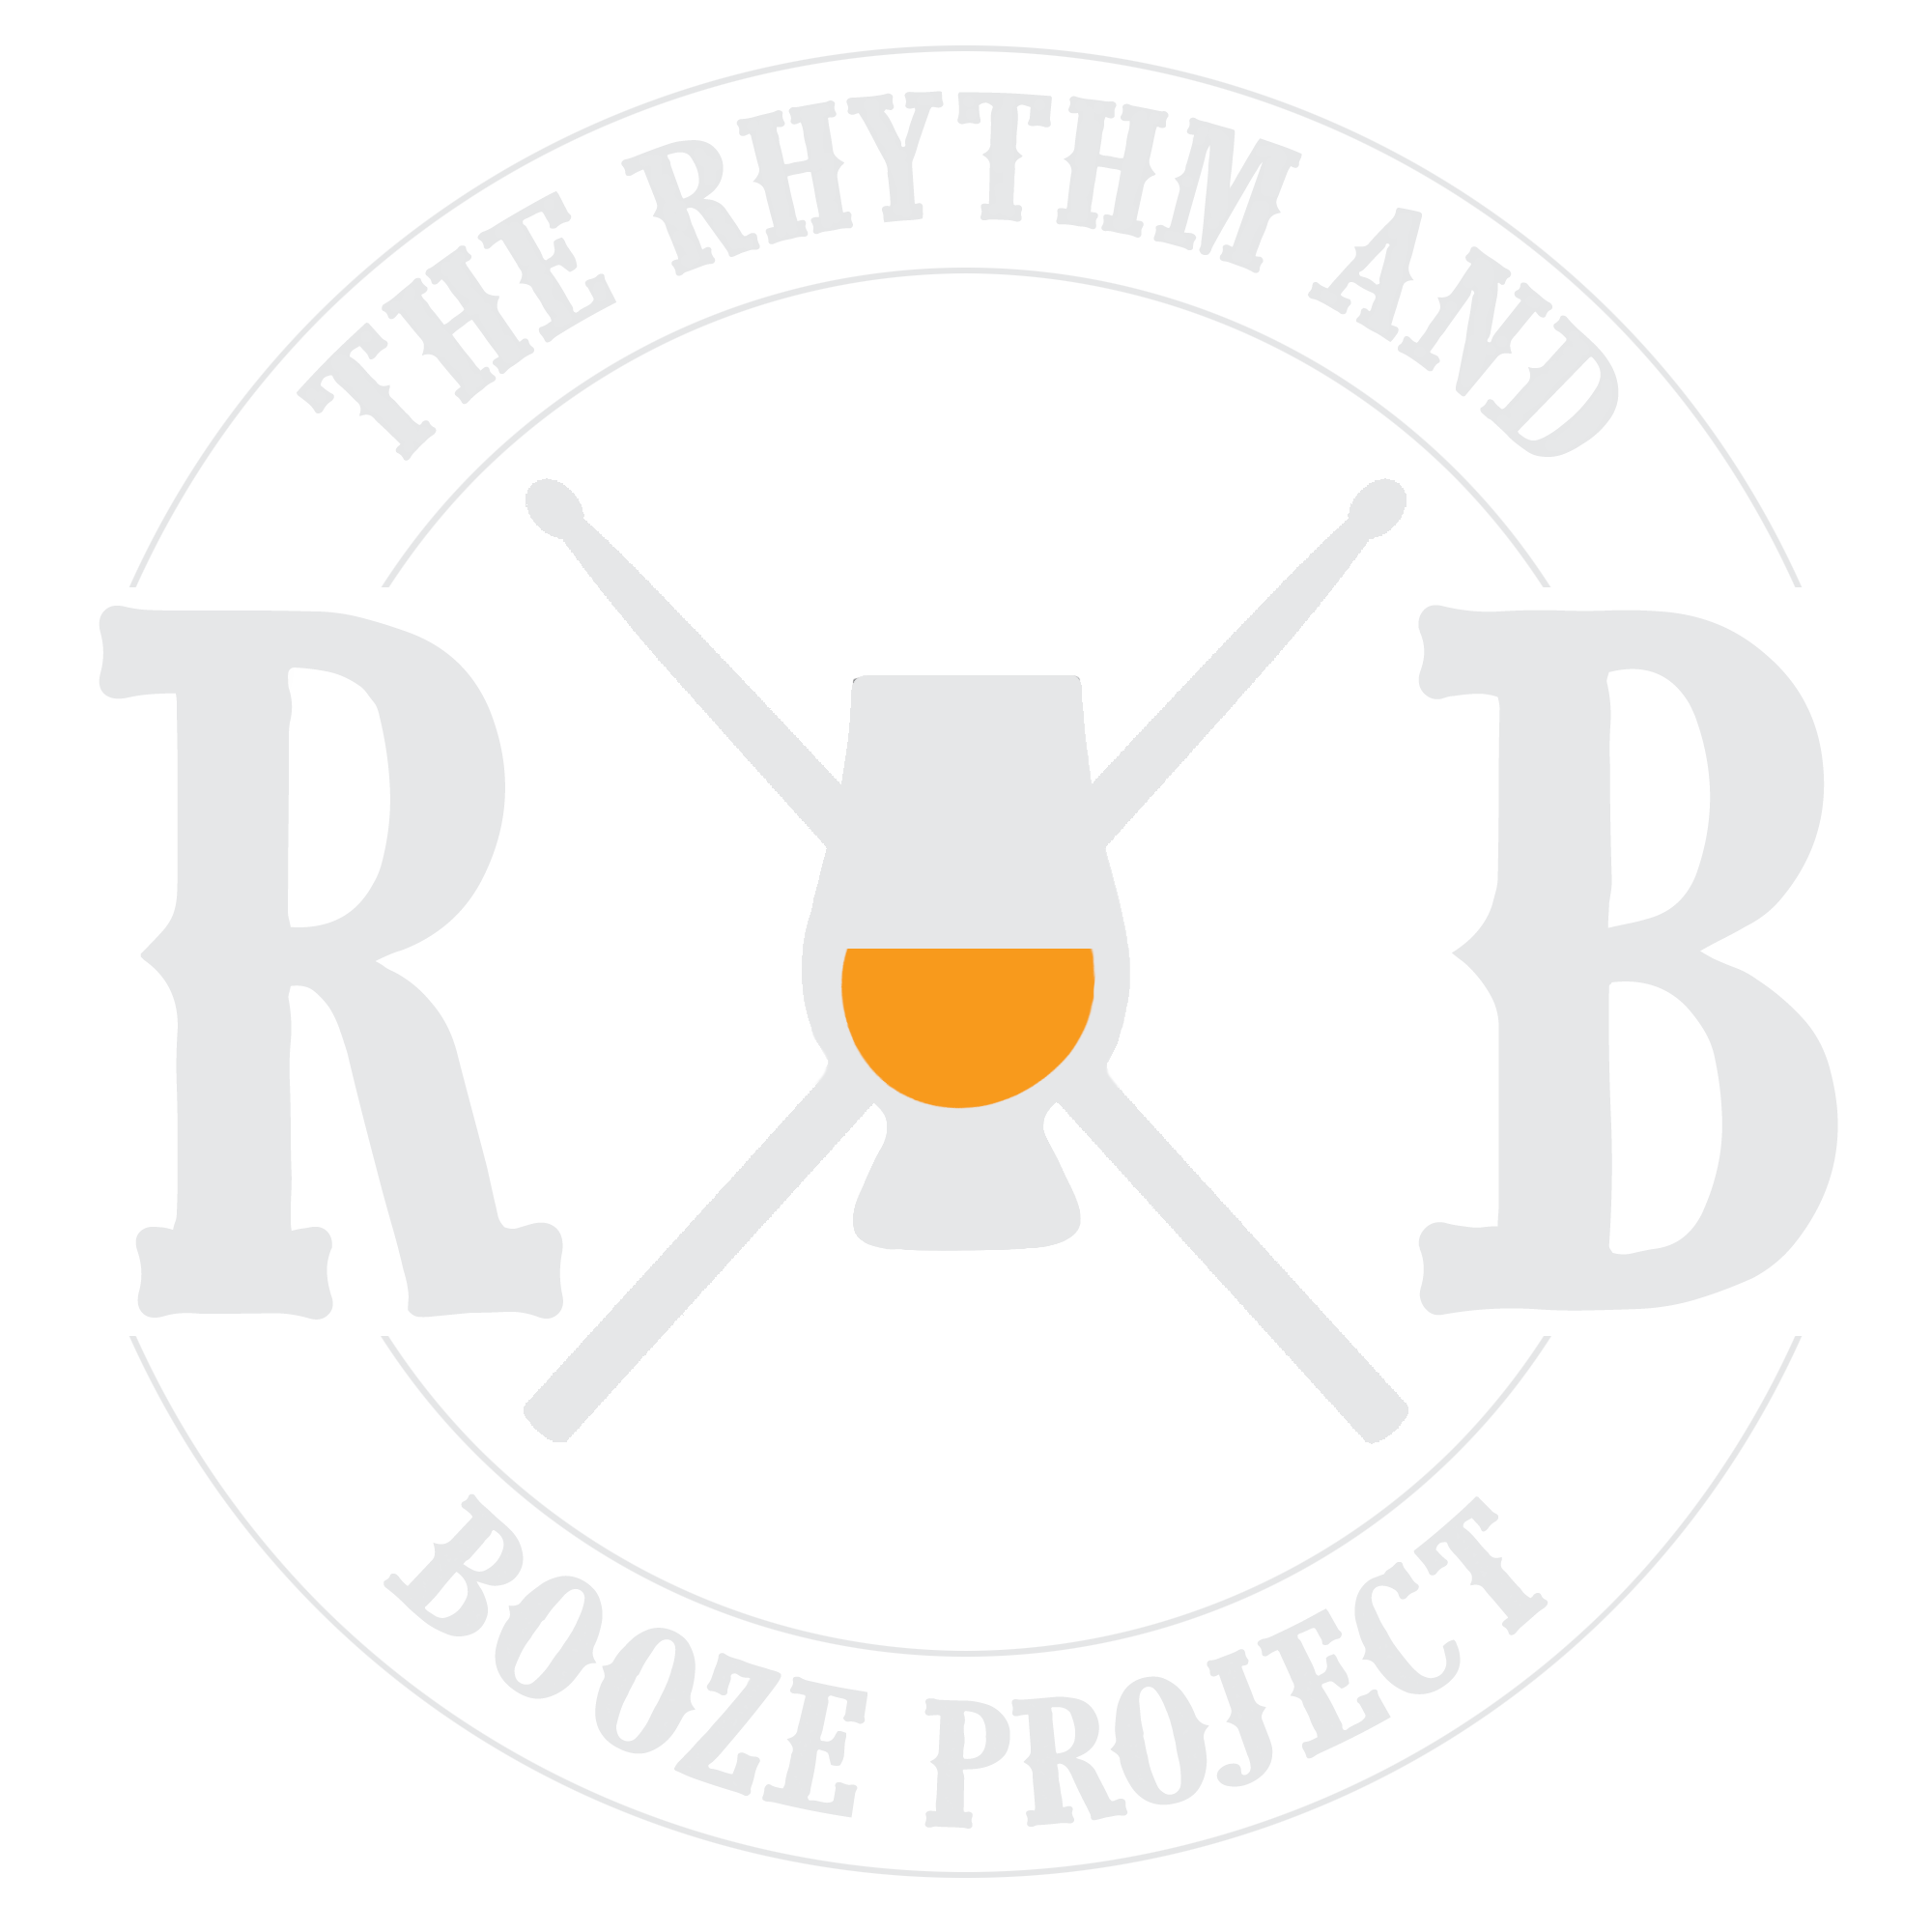 The Rhythm & Booze Project